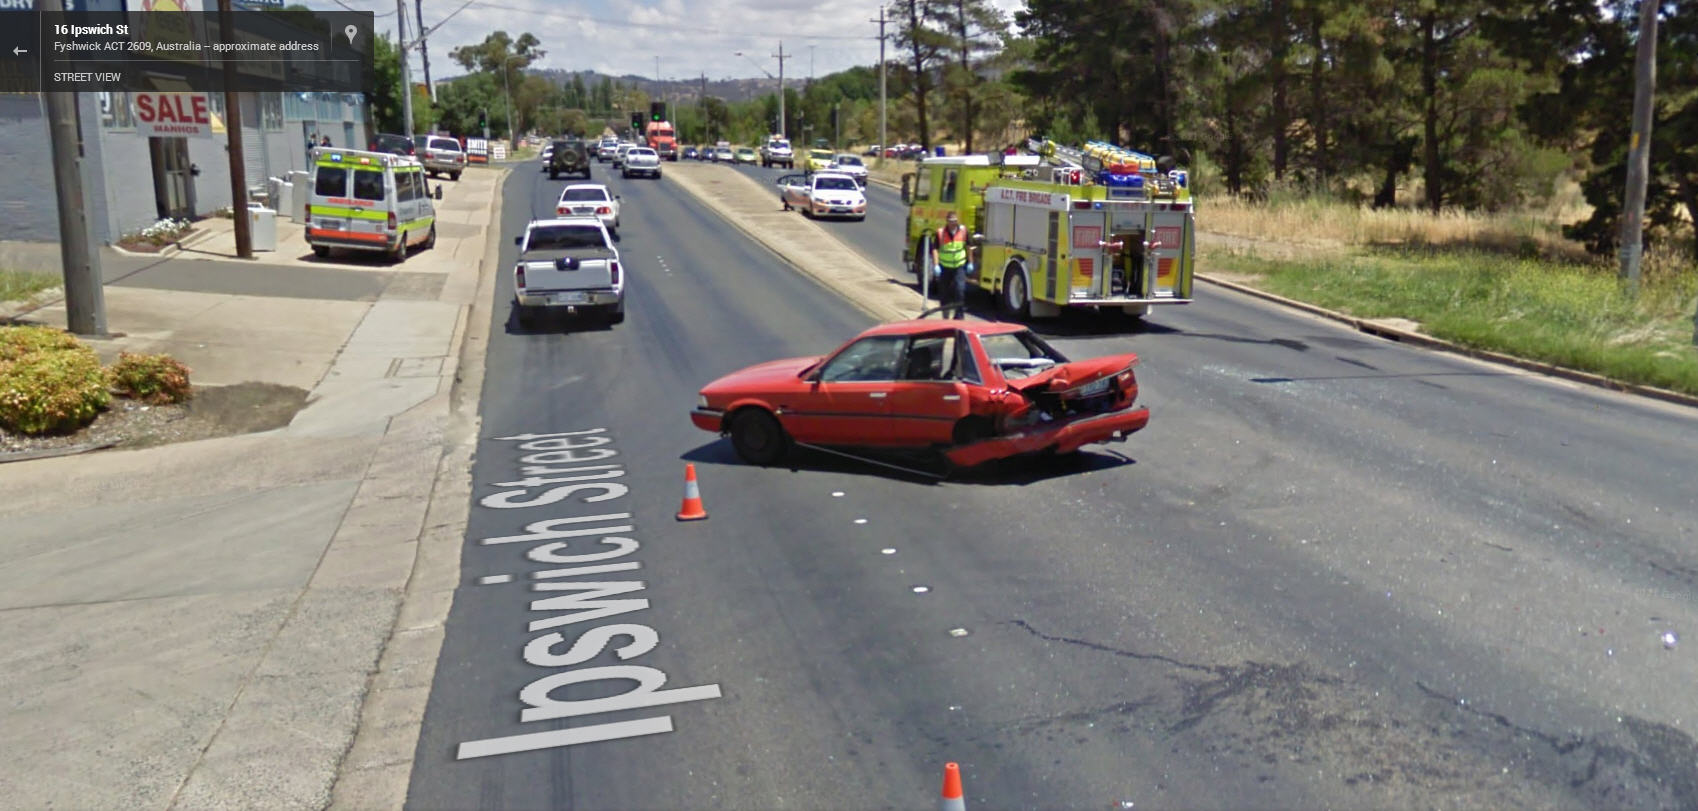 Another Australian Accident Captured by Google Street View